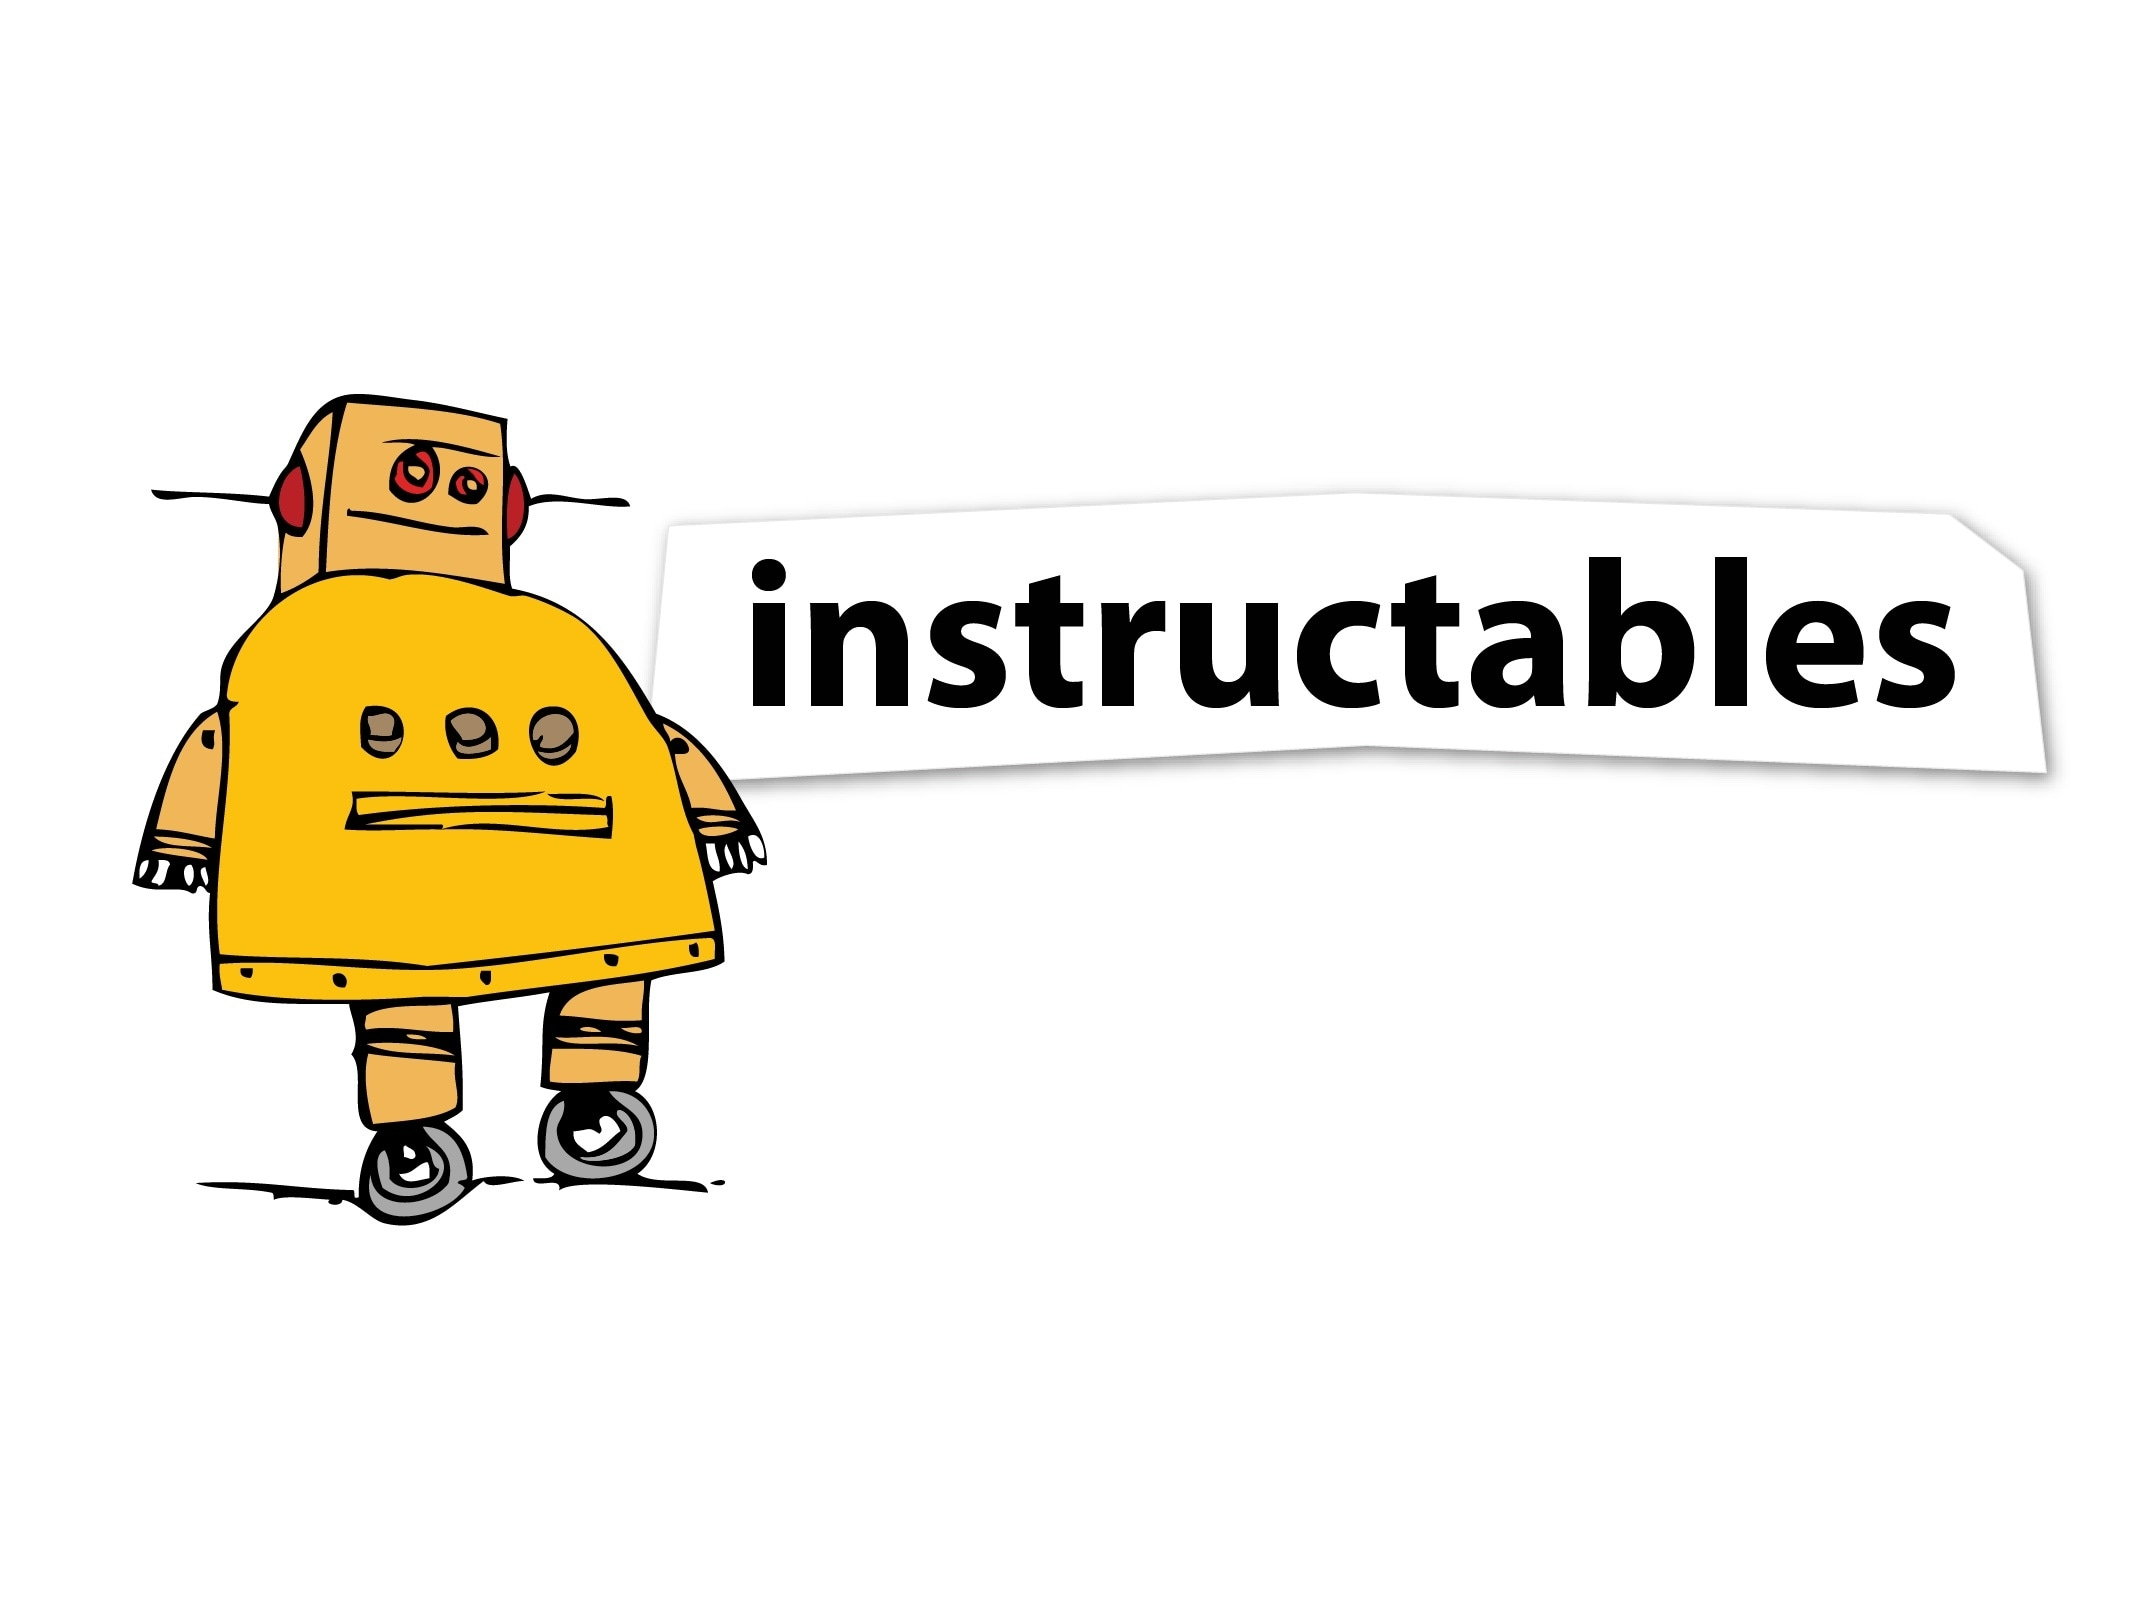 Instructables promo codes